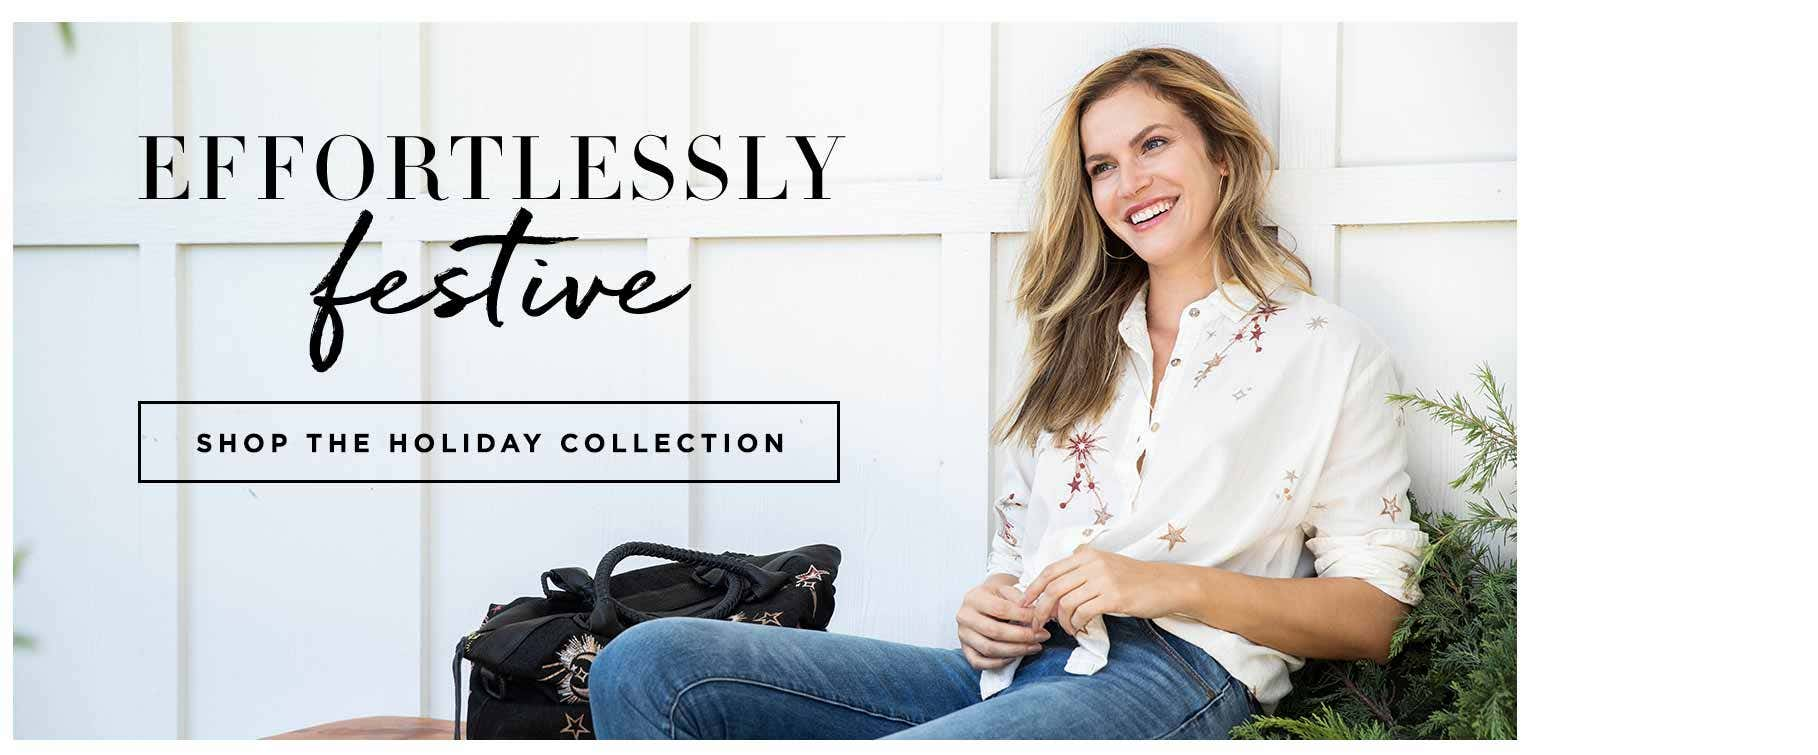 Effortlessly Festive - Shop the Holiday Collection